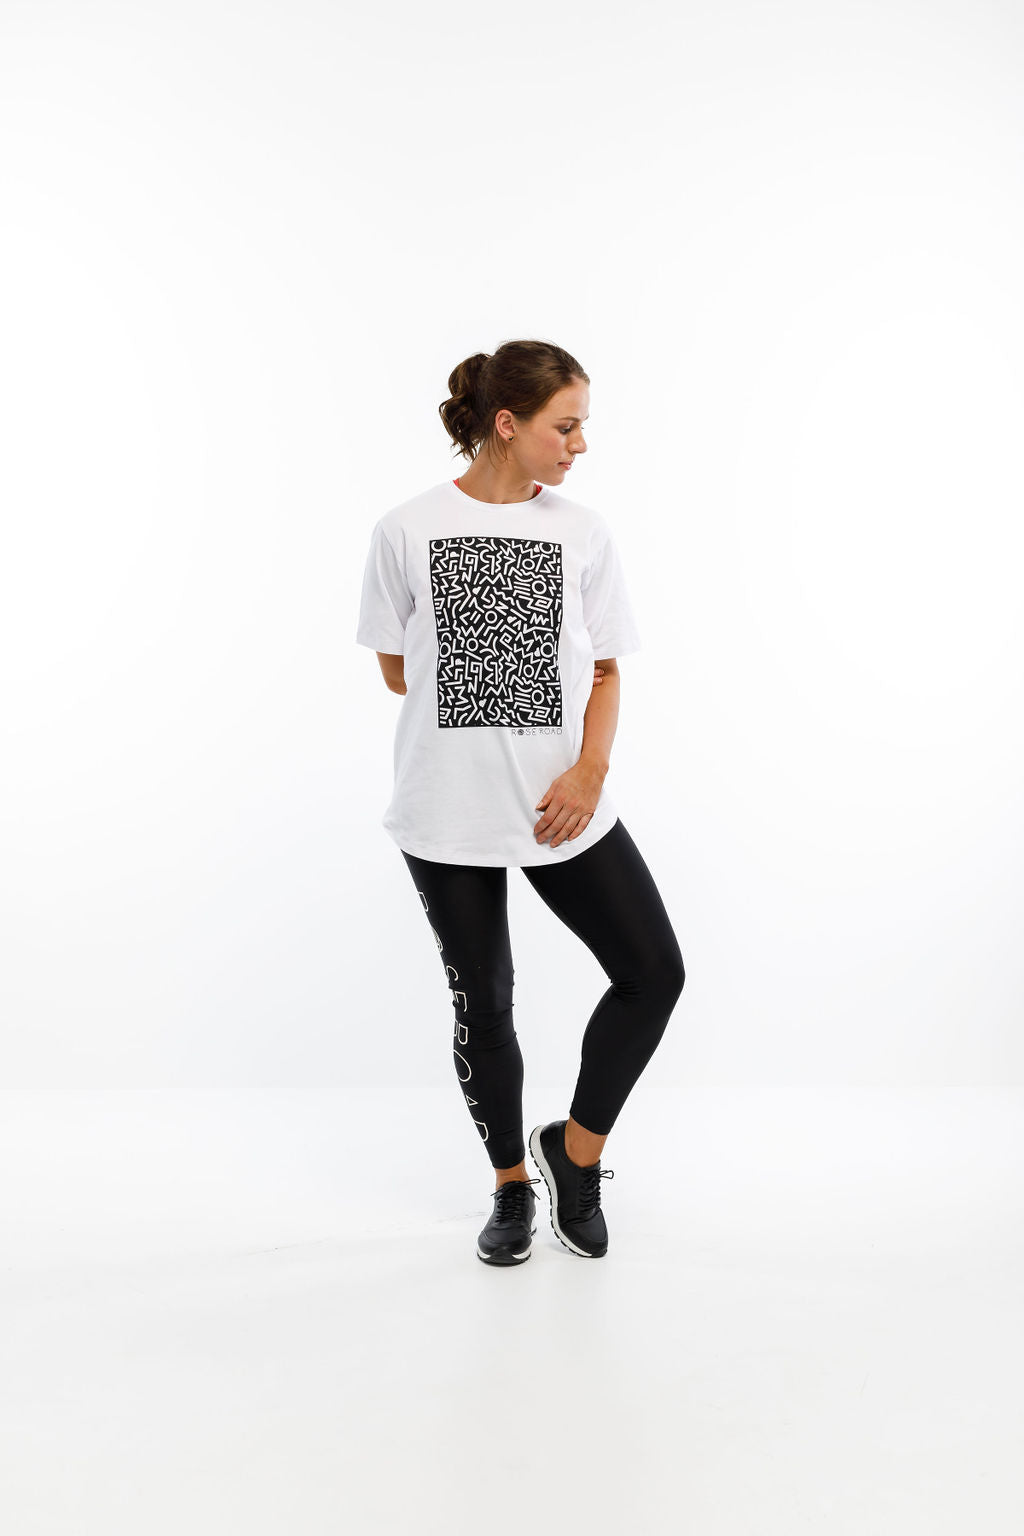 TEE - White with Squiggle Placement Print